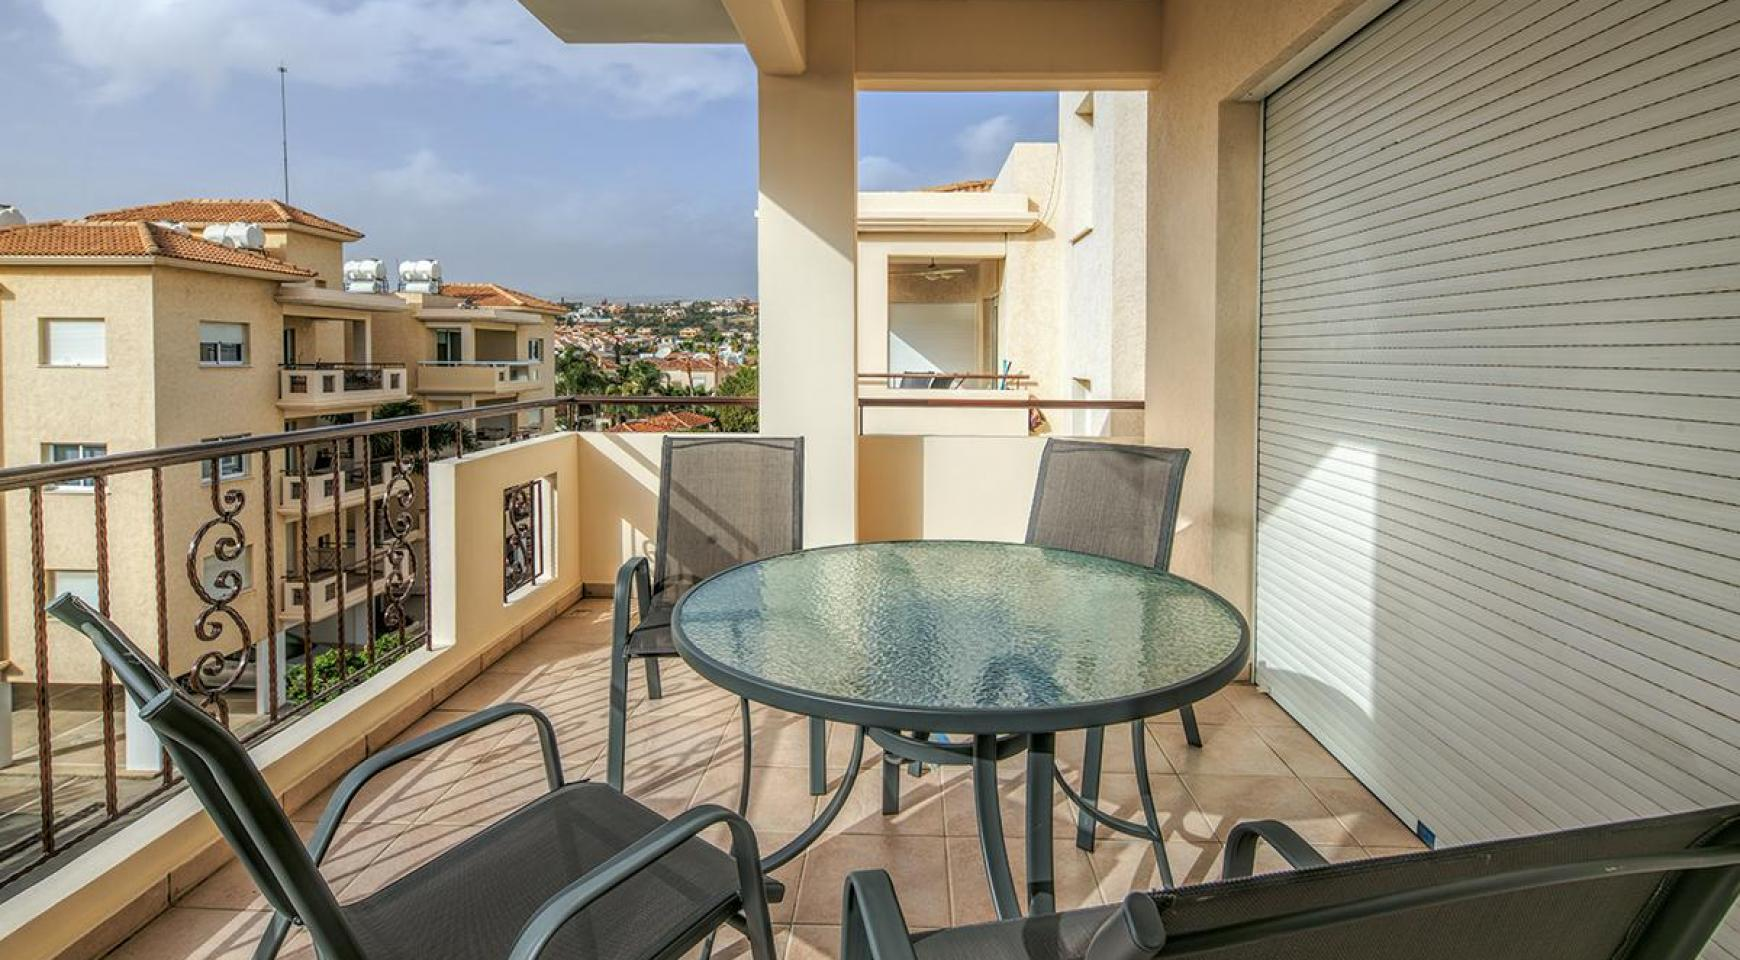 Luxury 2 Bedroom Apartment Mesogios Iris 301 in the Tourist area near the Beach - 9